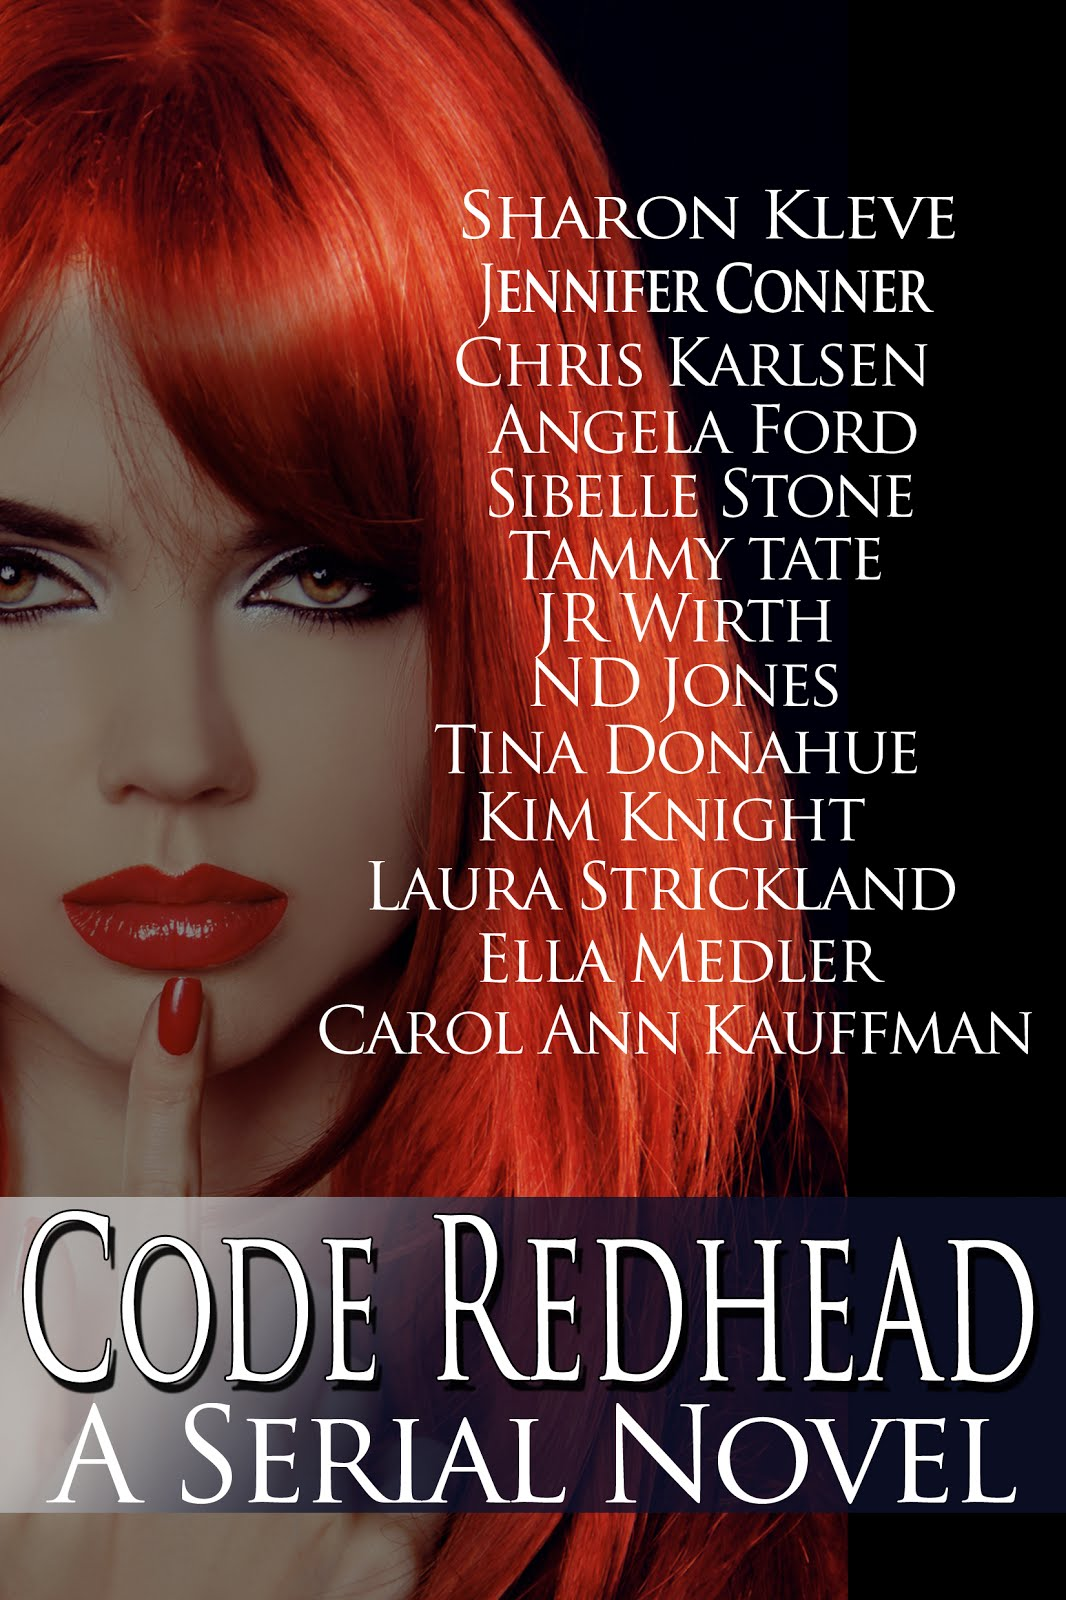 Code Redhead - A Serial Novel (Charity)